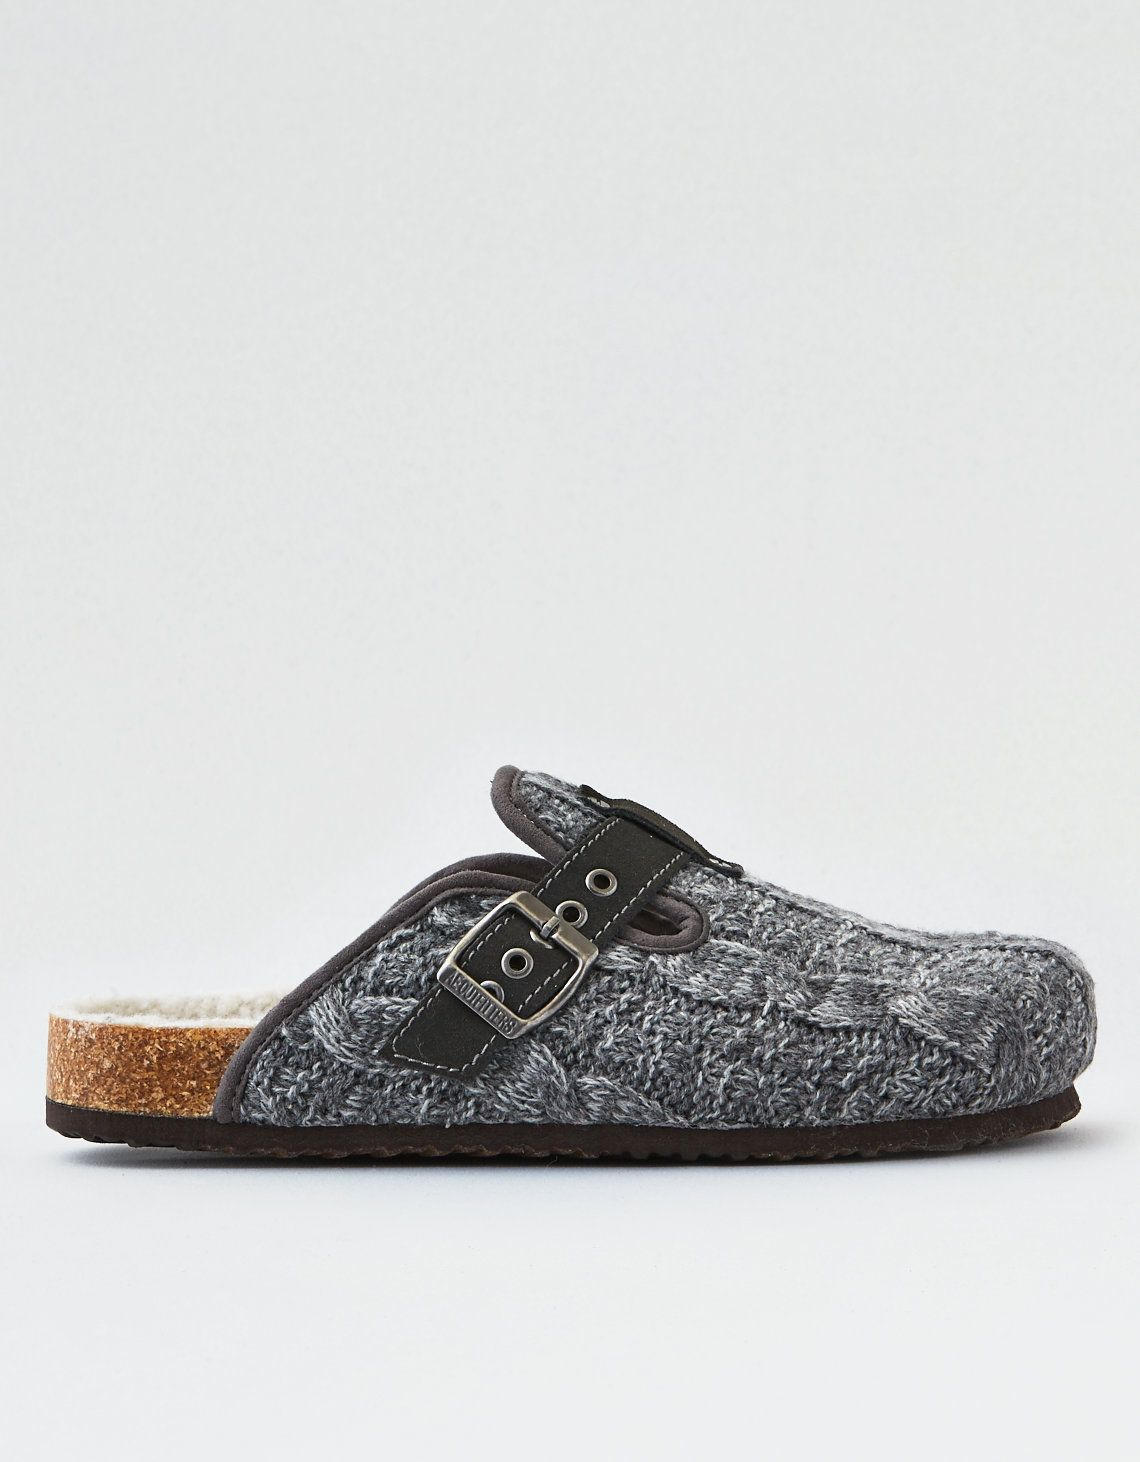 f842a2c88963 American Eagle cable knit clogs (knockoff birkenstocks)